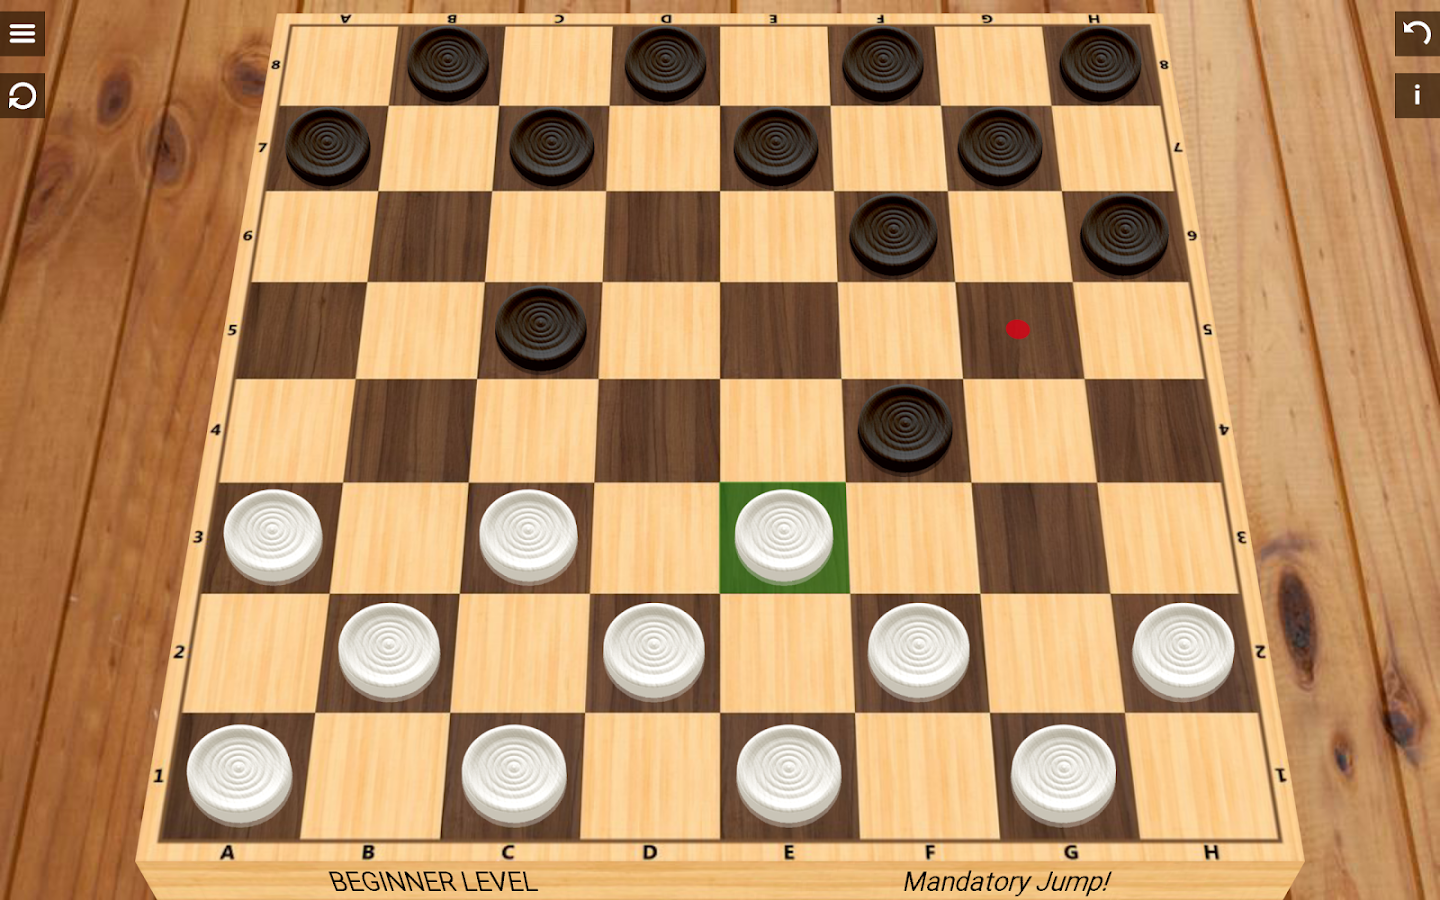 Checkers - Android Apps on Google Play